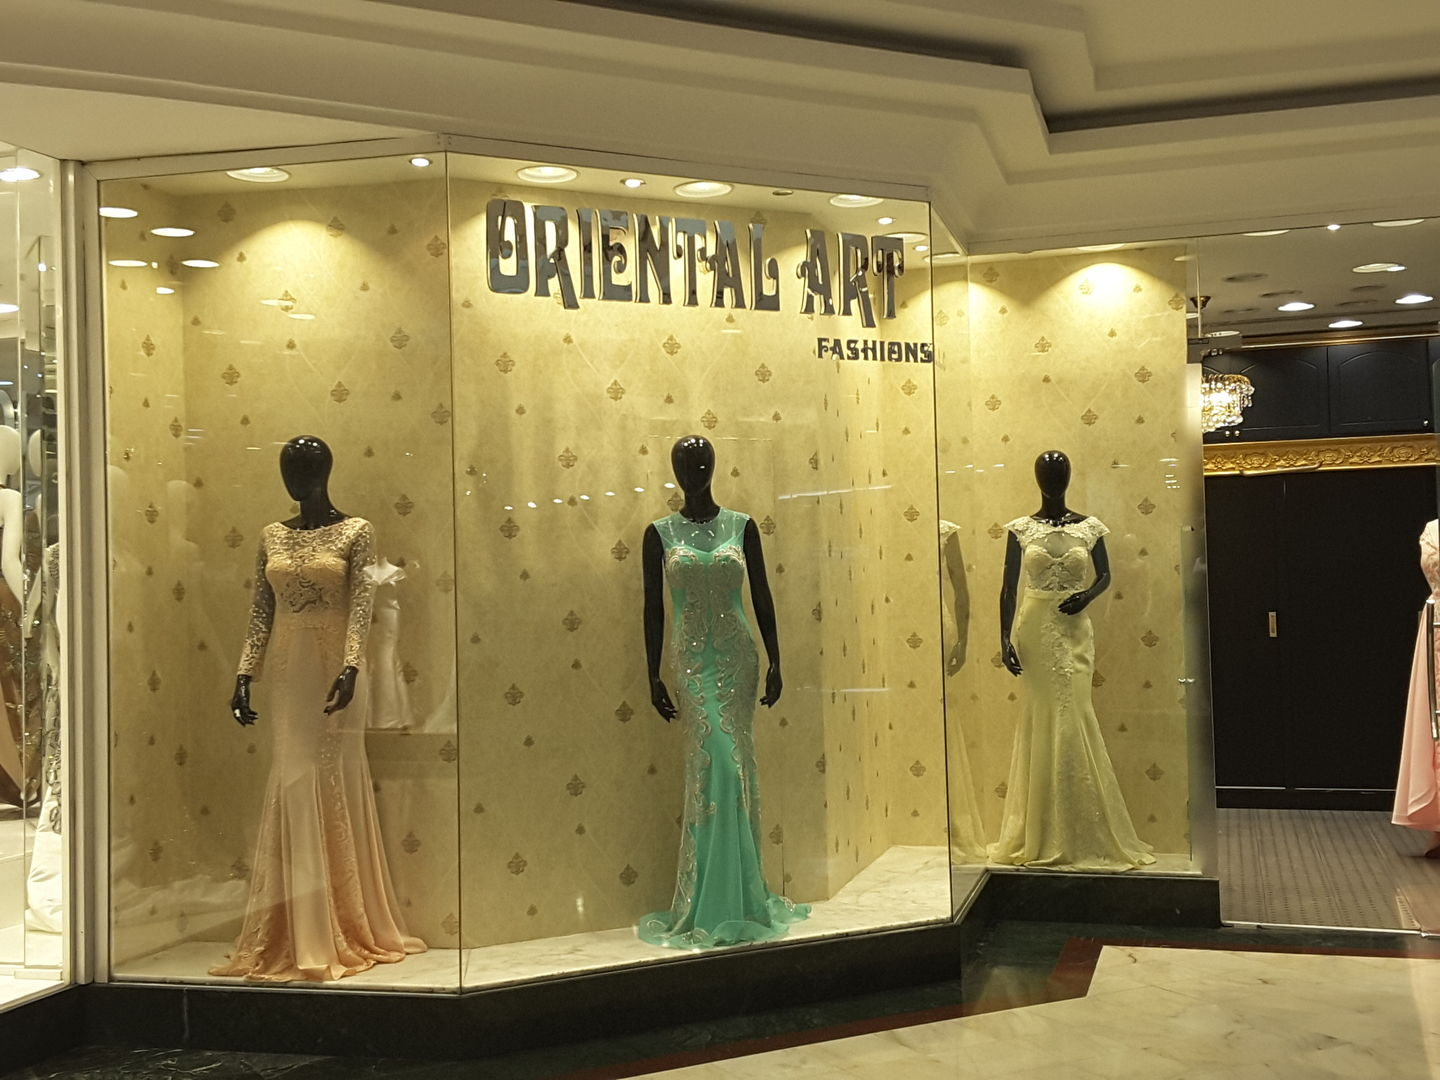 HiDubai-business-oriental-art-fashions-shopping-apparel-al-qusais-1-dubai-2